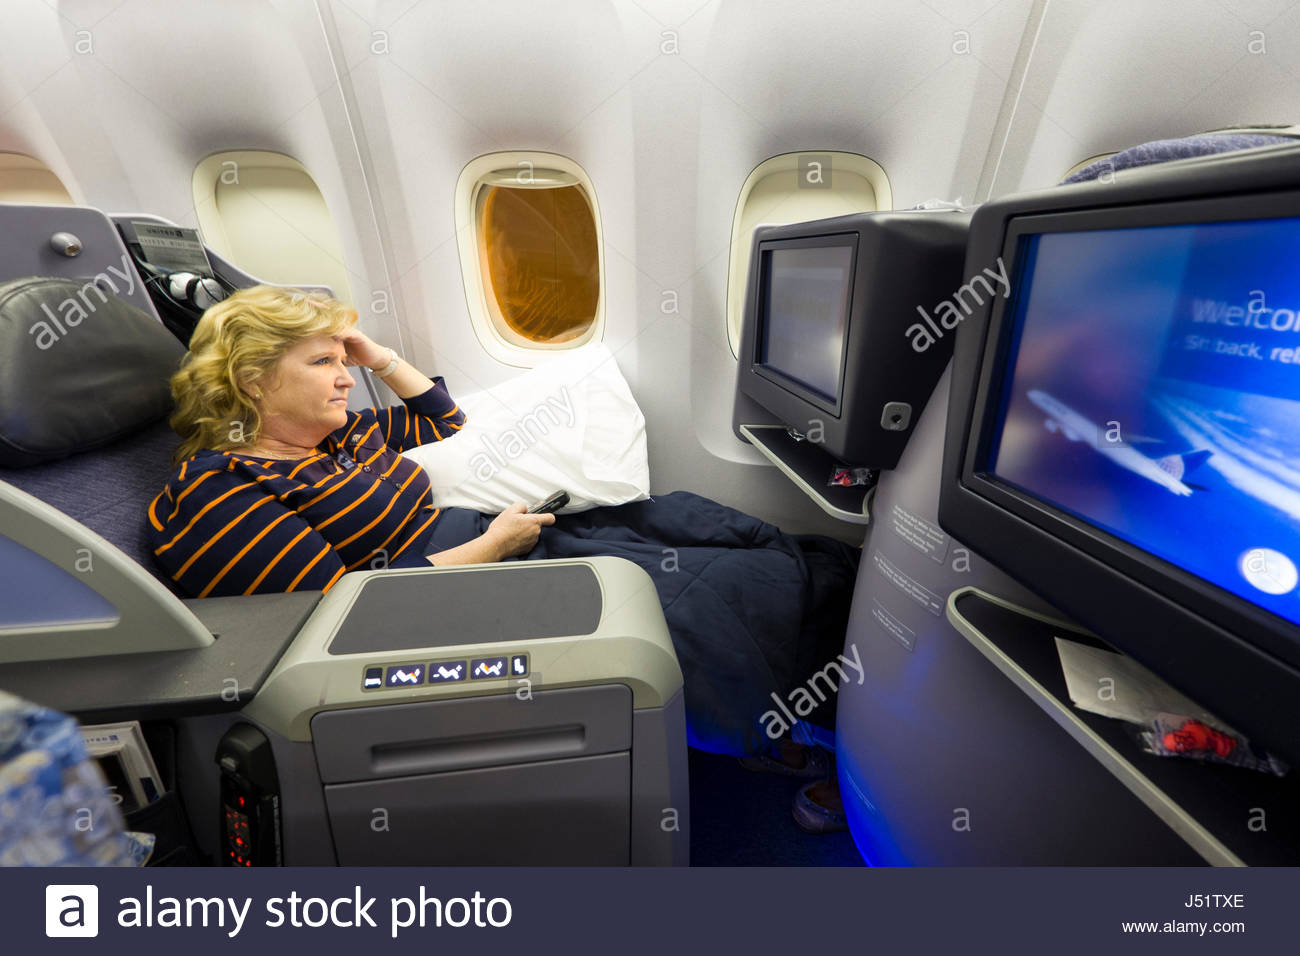 In Flight Entertainment Stock Photos & In Flight Entertainment Stock